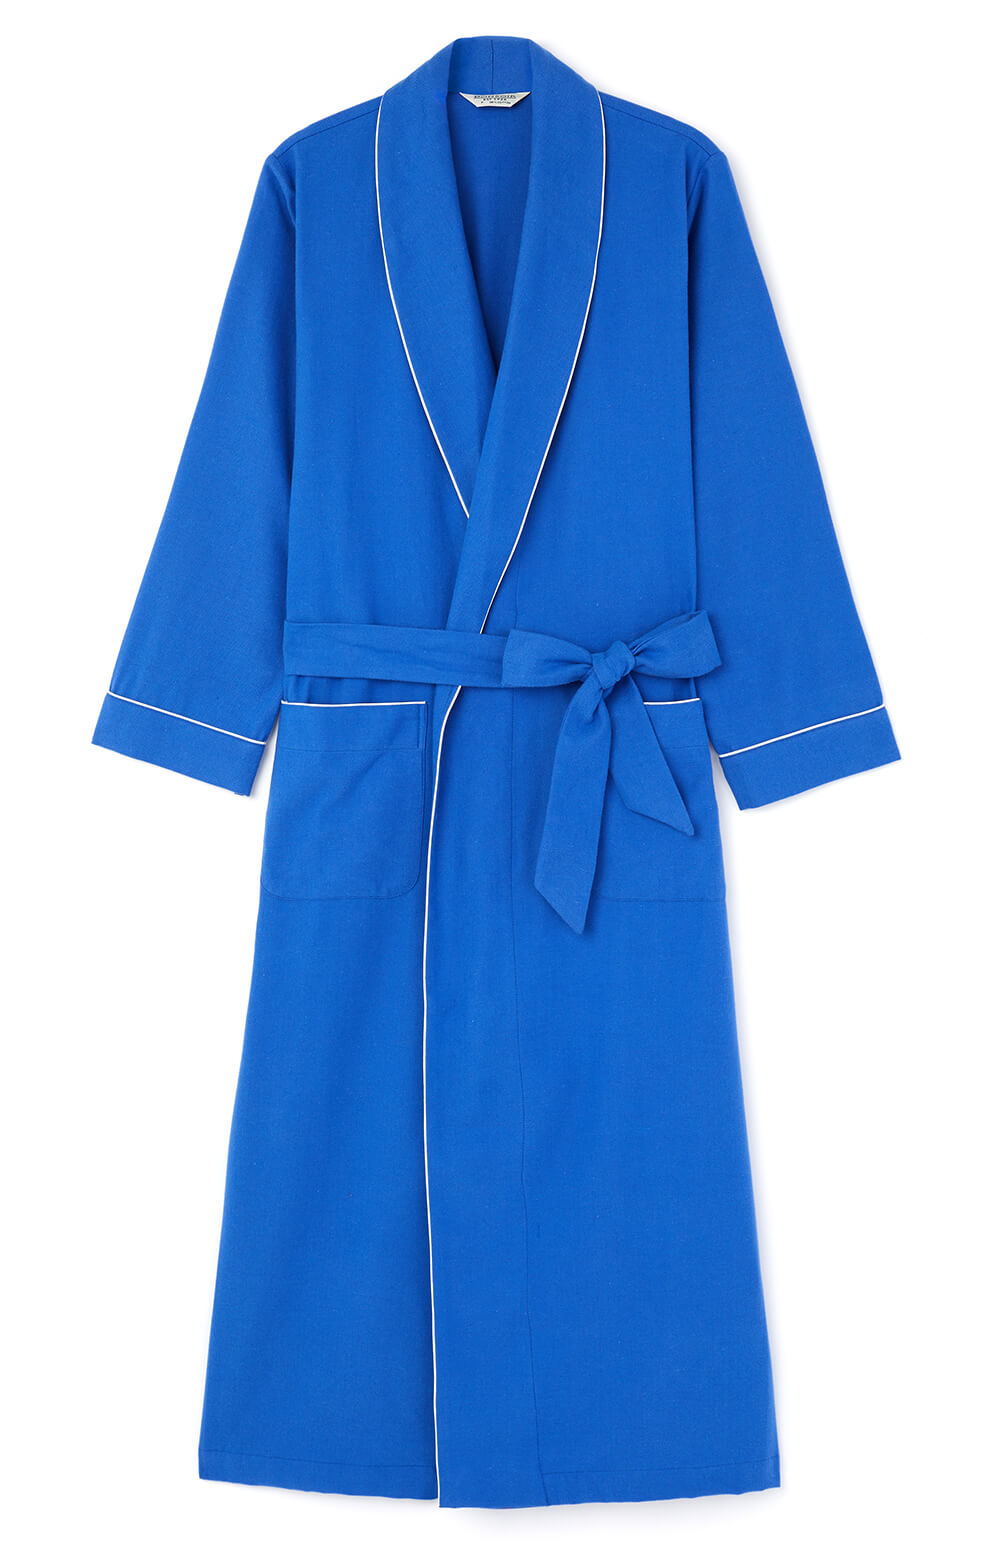 Brushed Cotton Bright Blue Gown | Bonsoir of London